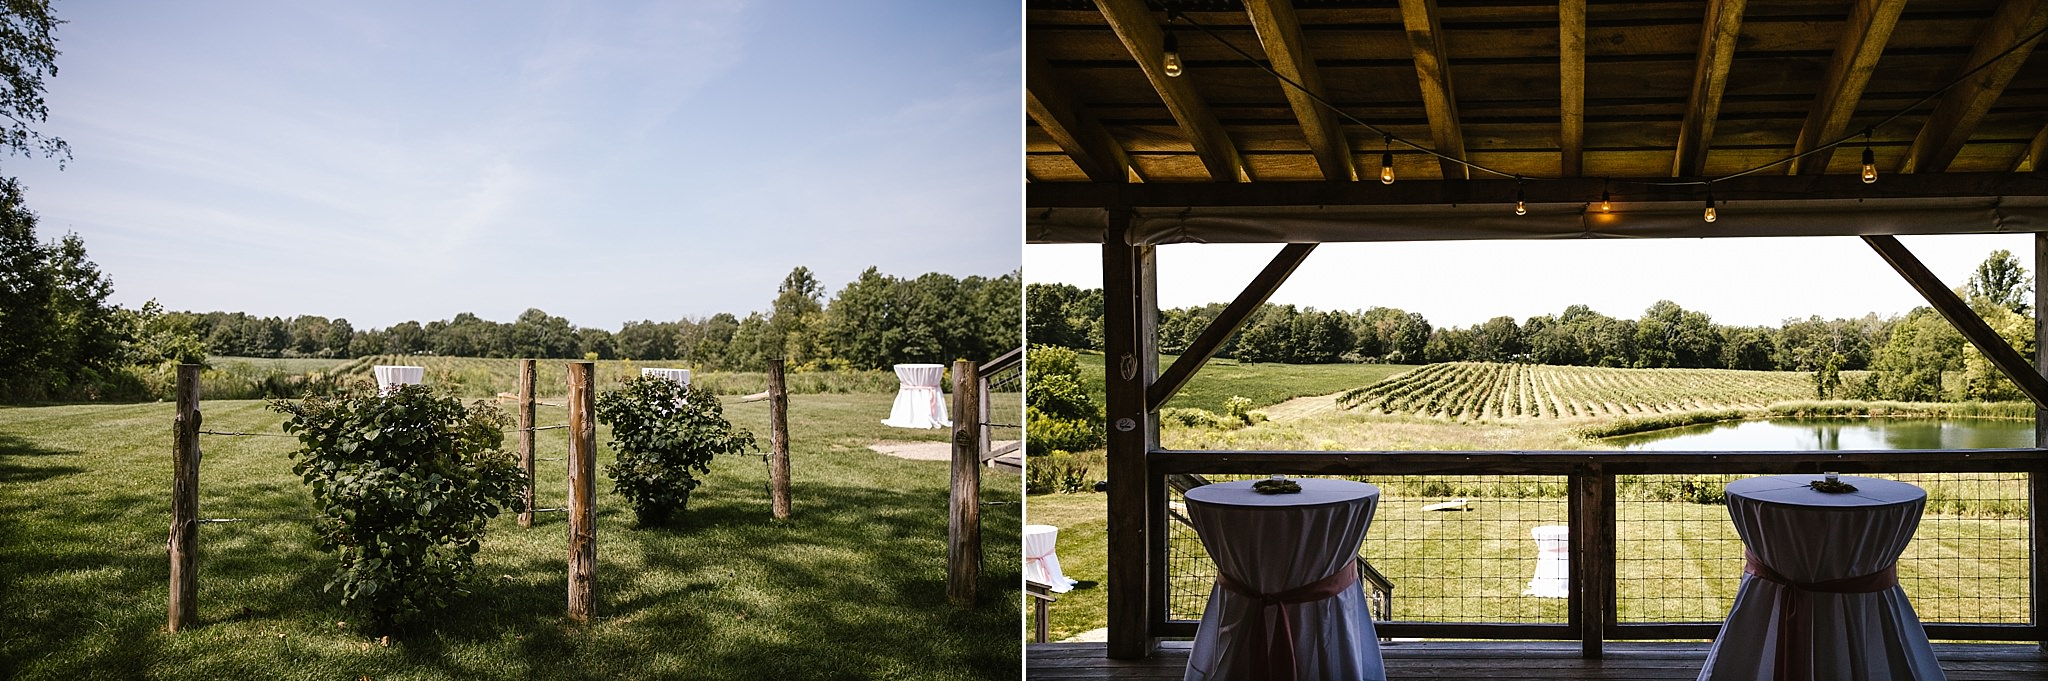 Destination Wedding Photographer Vineyard Wedding Barn Wedding Backyard Wedding Intimate Wedding Hidden Vineyard Wedding Barn Berrien Springs DIY Wedding michigan wedding photographer ME+HIM Photography